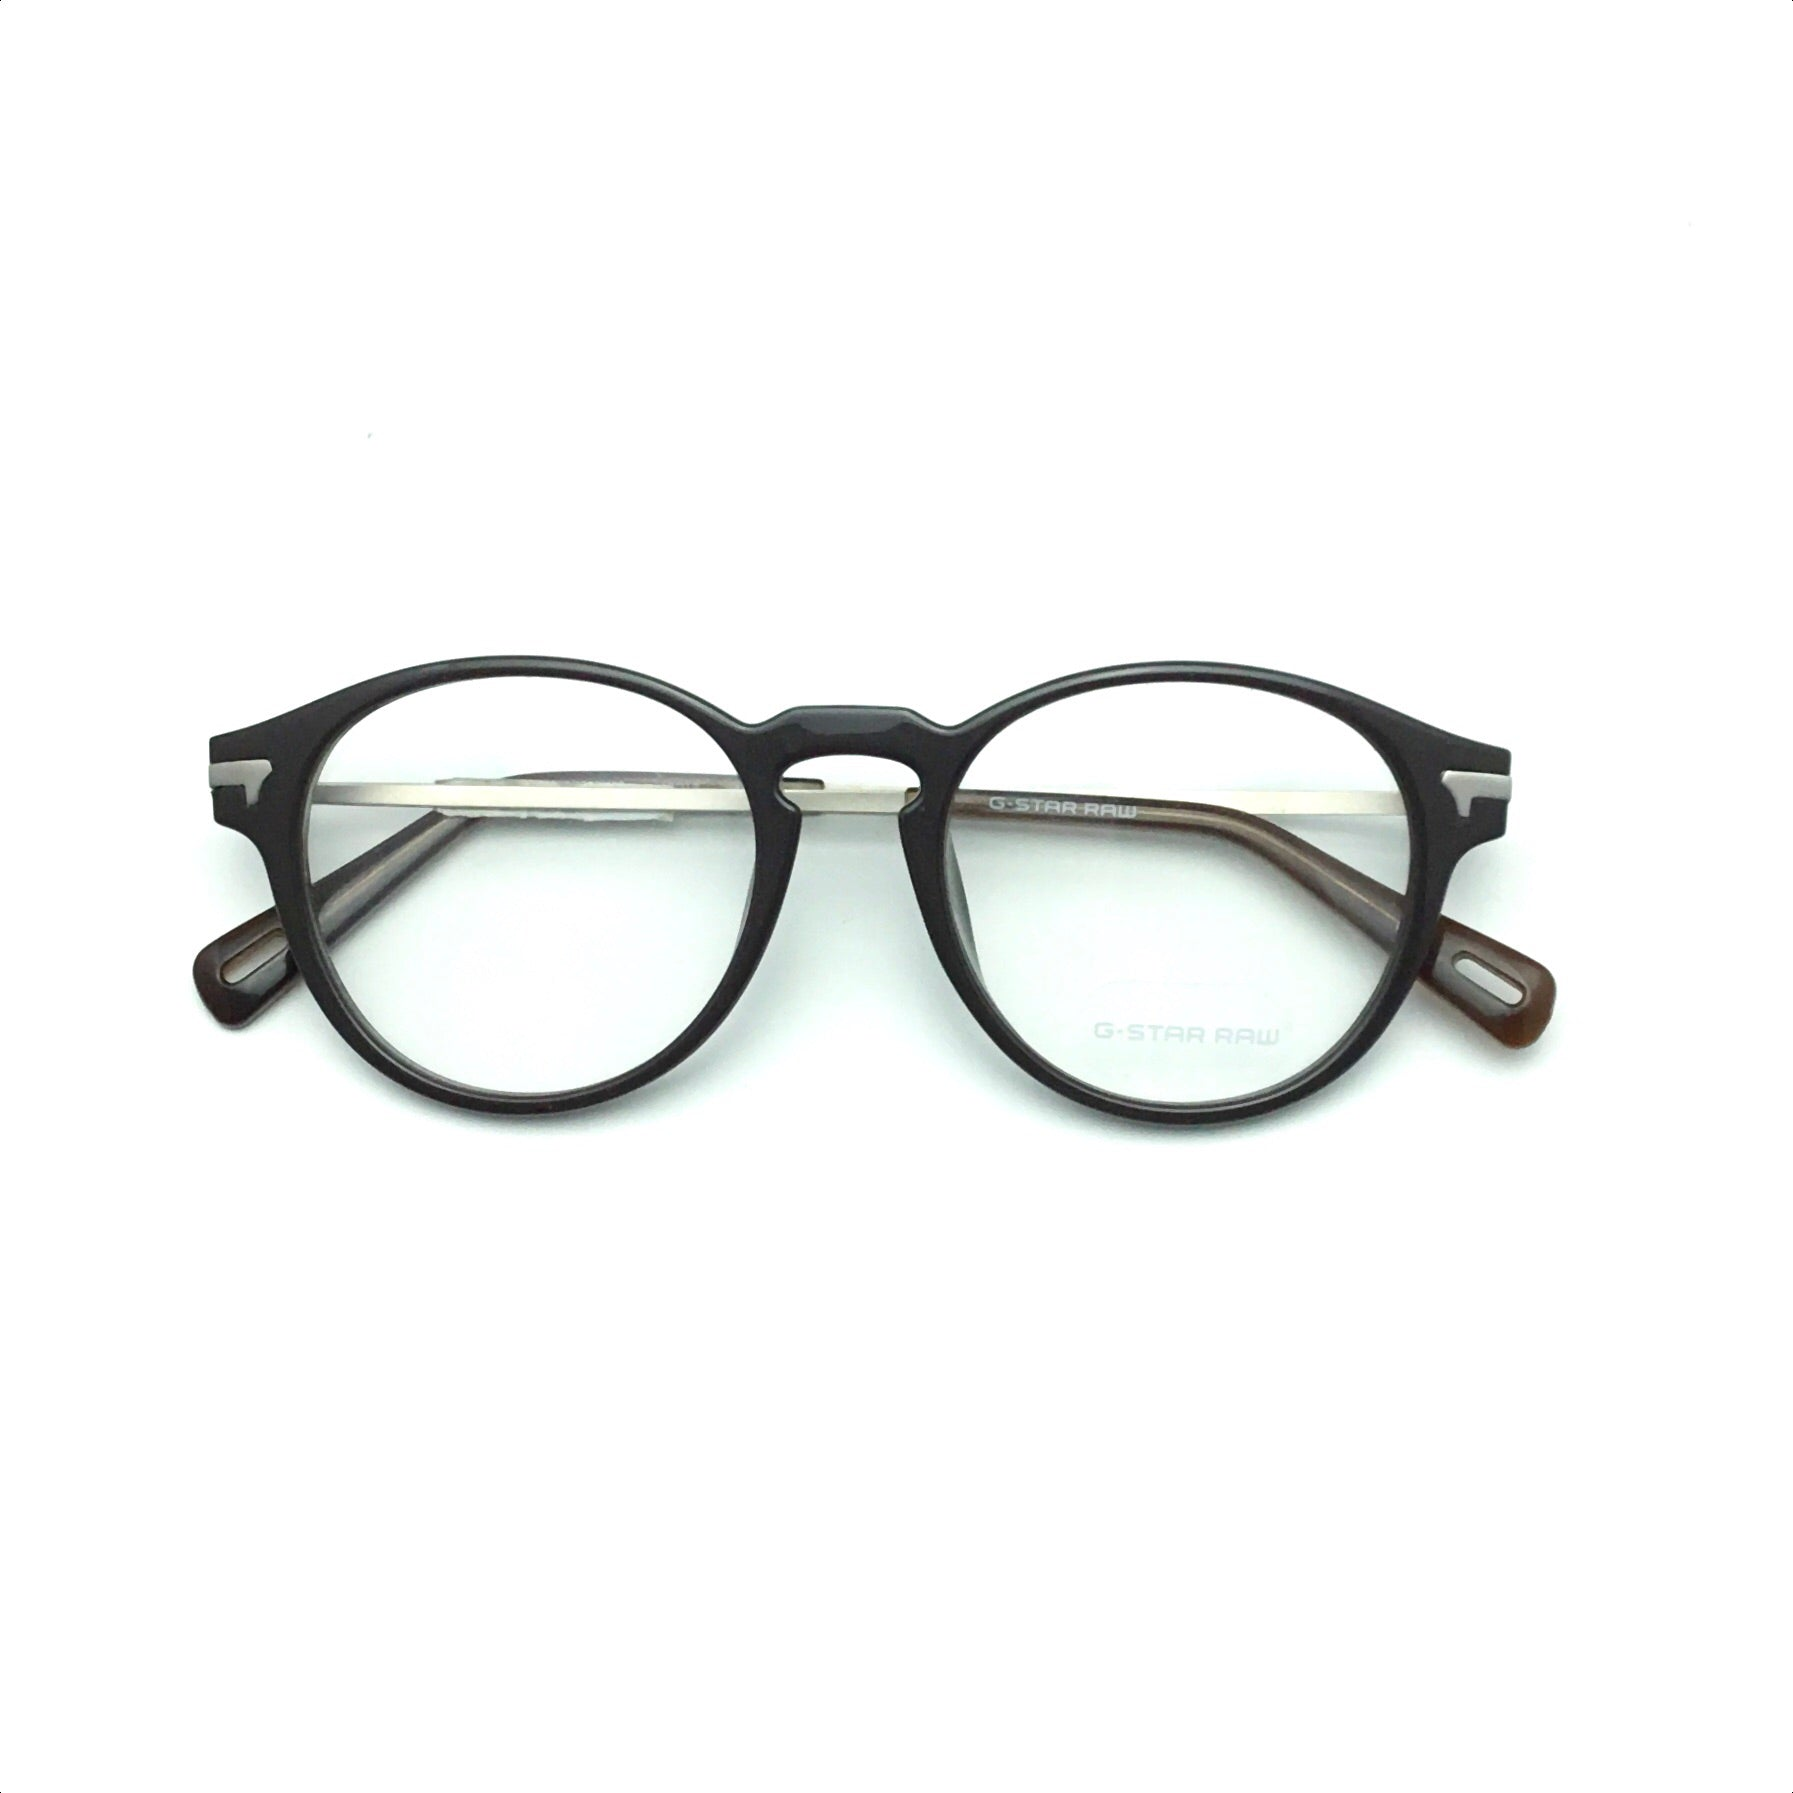 G Star Glasses $149 ROUND E20